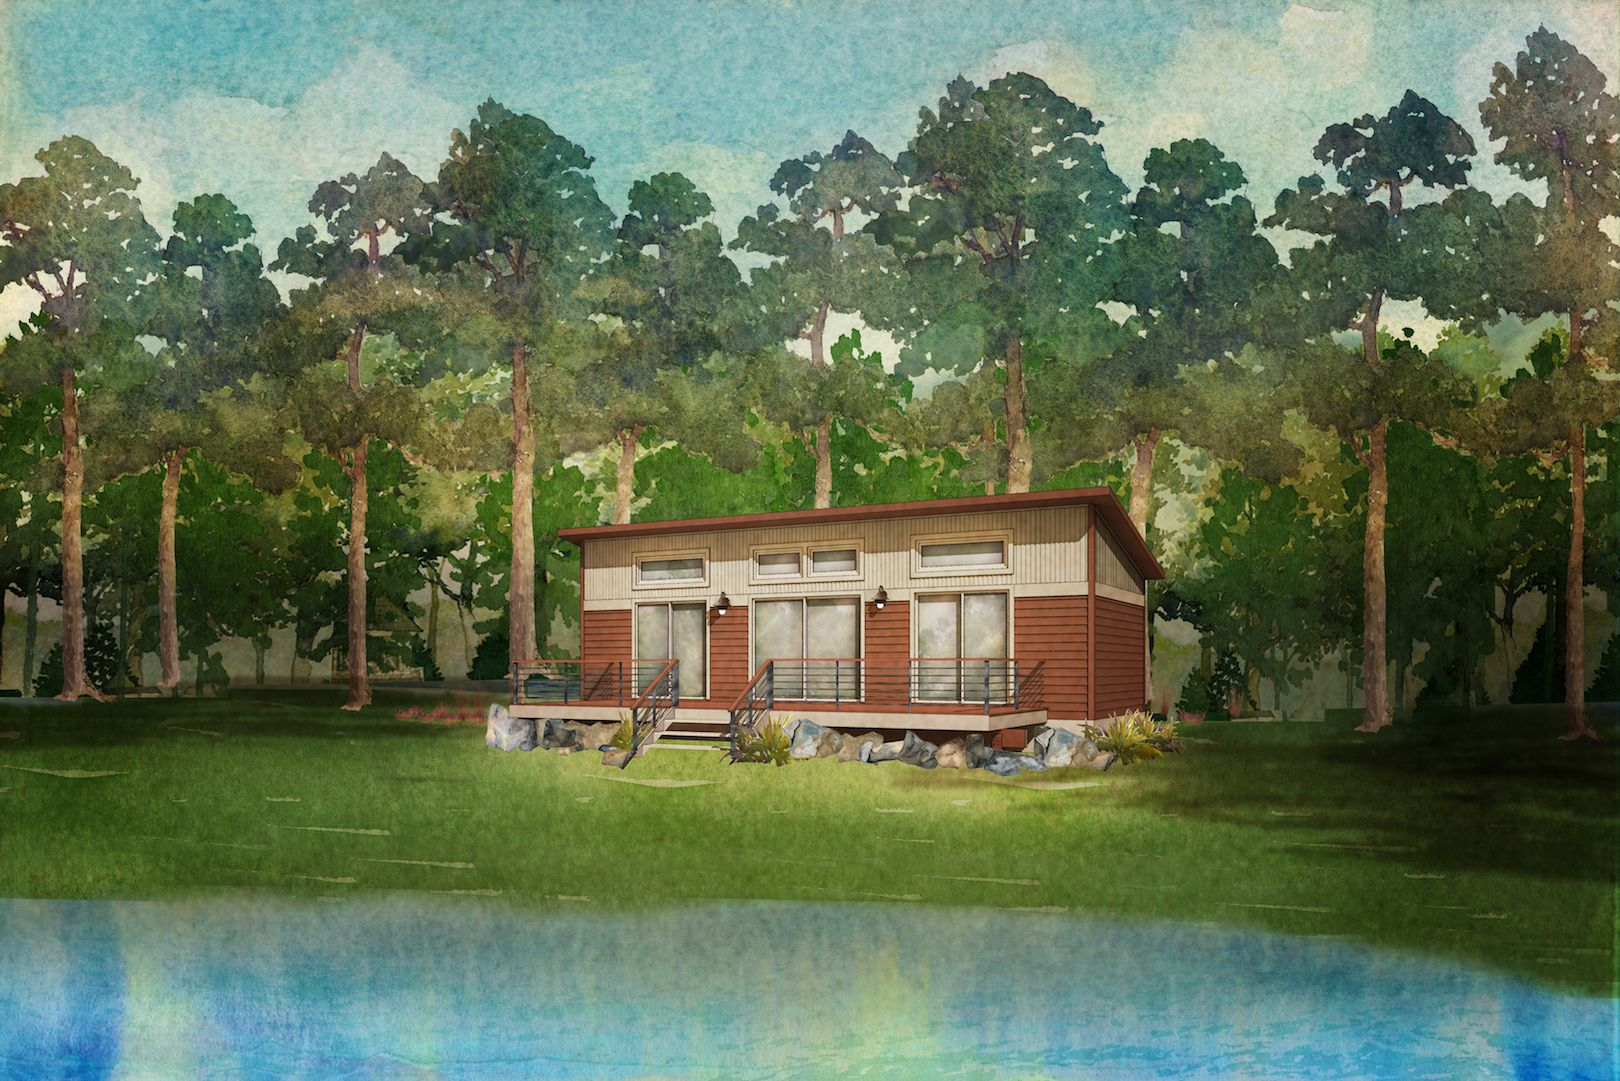 foxtail modular home rendering